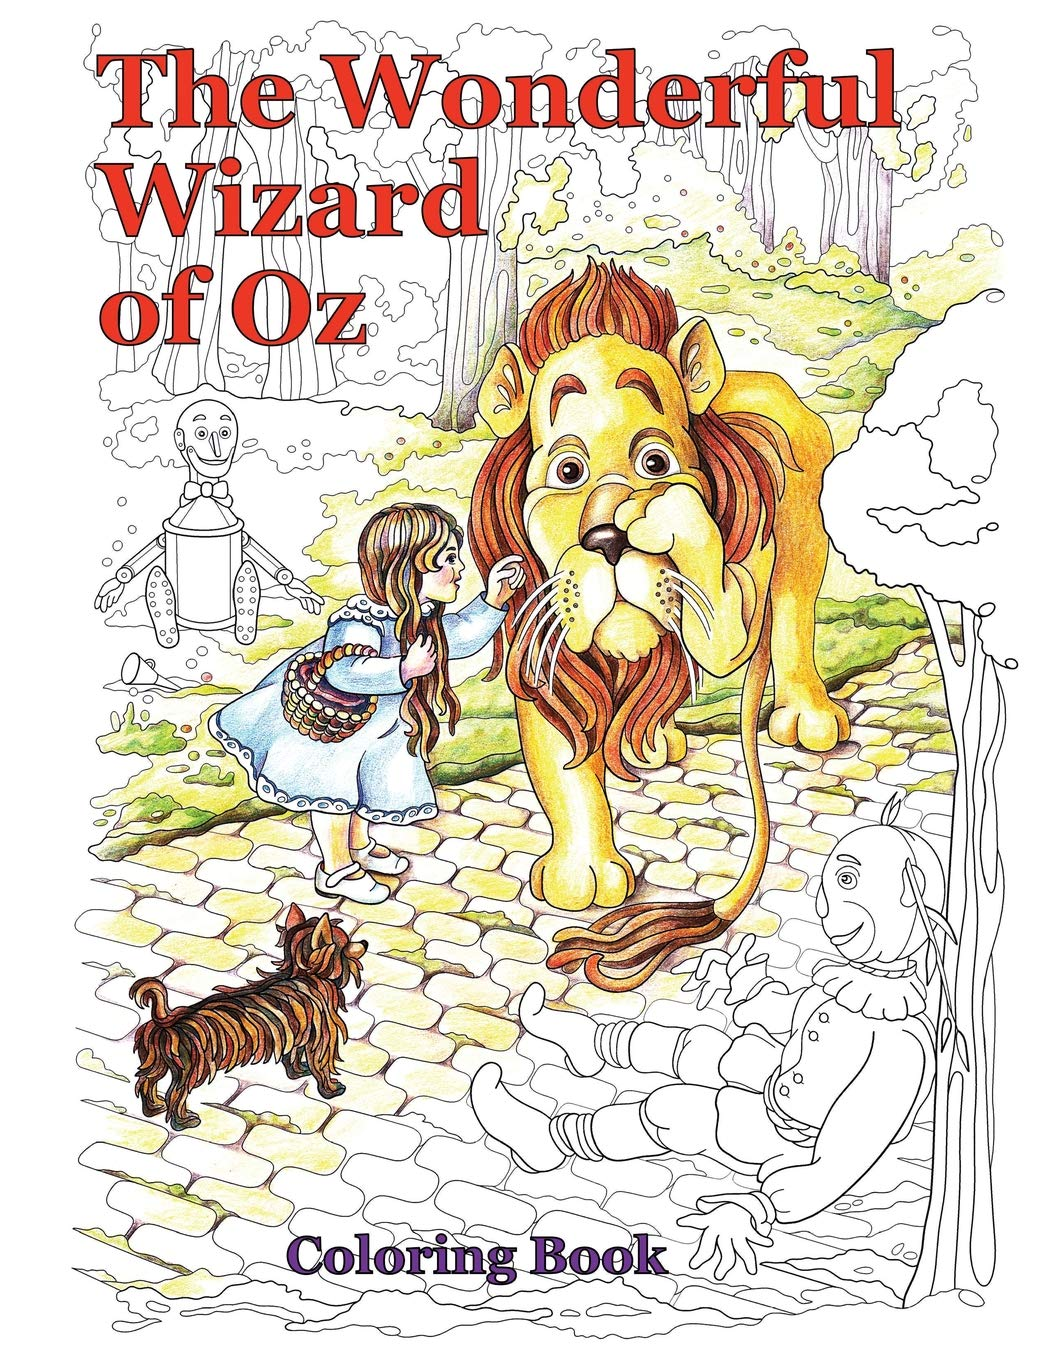 Wonderful Wizard of Oz Coloring Pages | 1360x1051